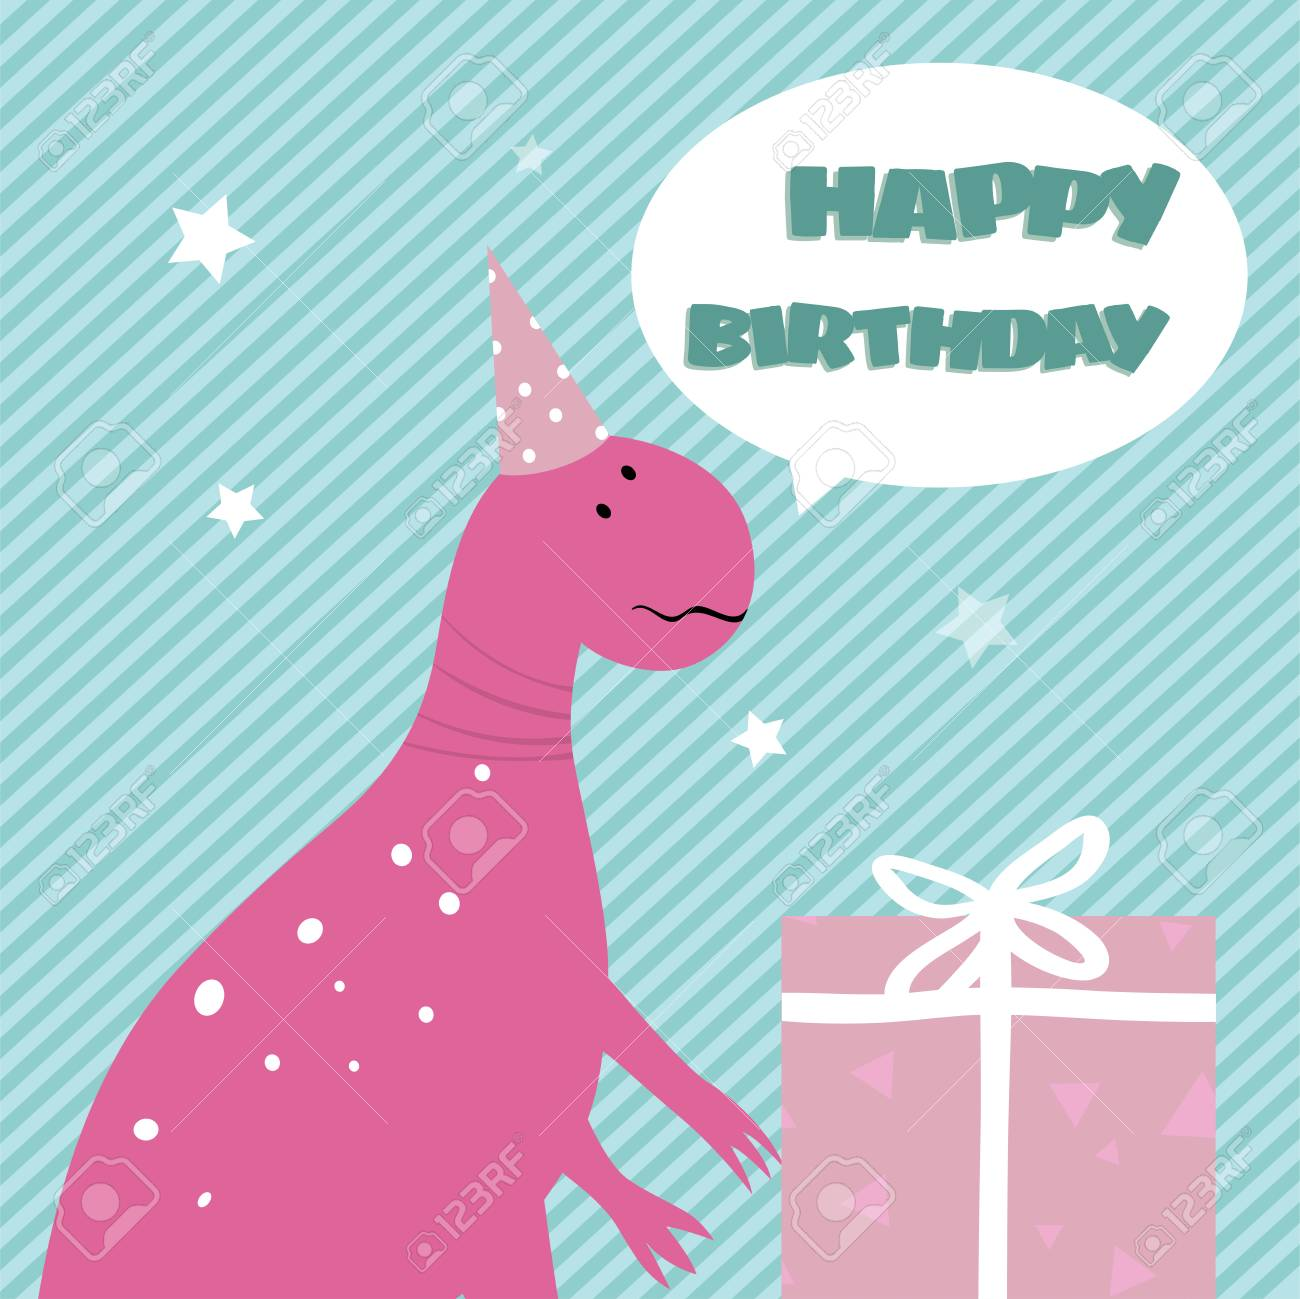 Birthday Card With Funny Cartoon Pink Dinosaur And Gift Box Isolated On Striped Background Bright